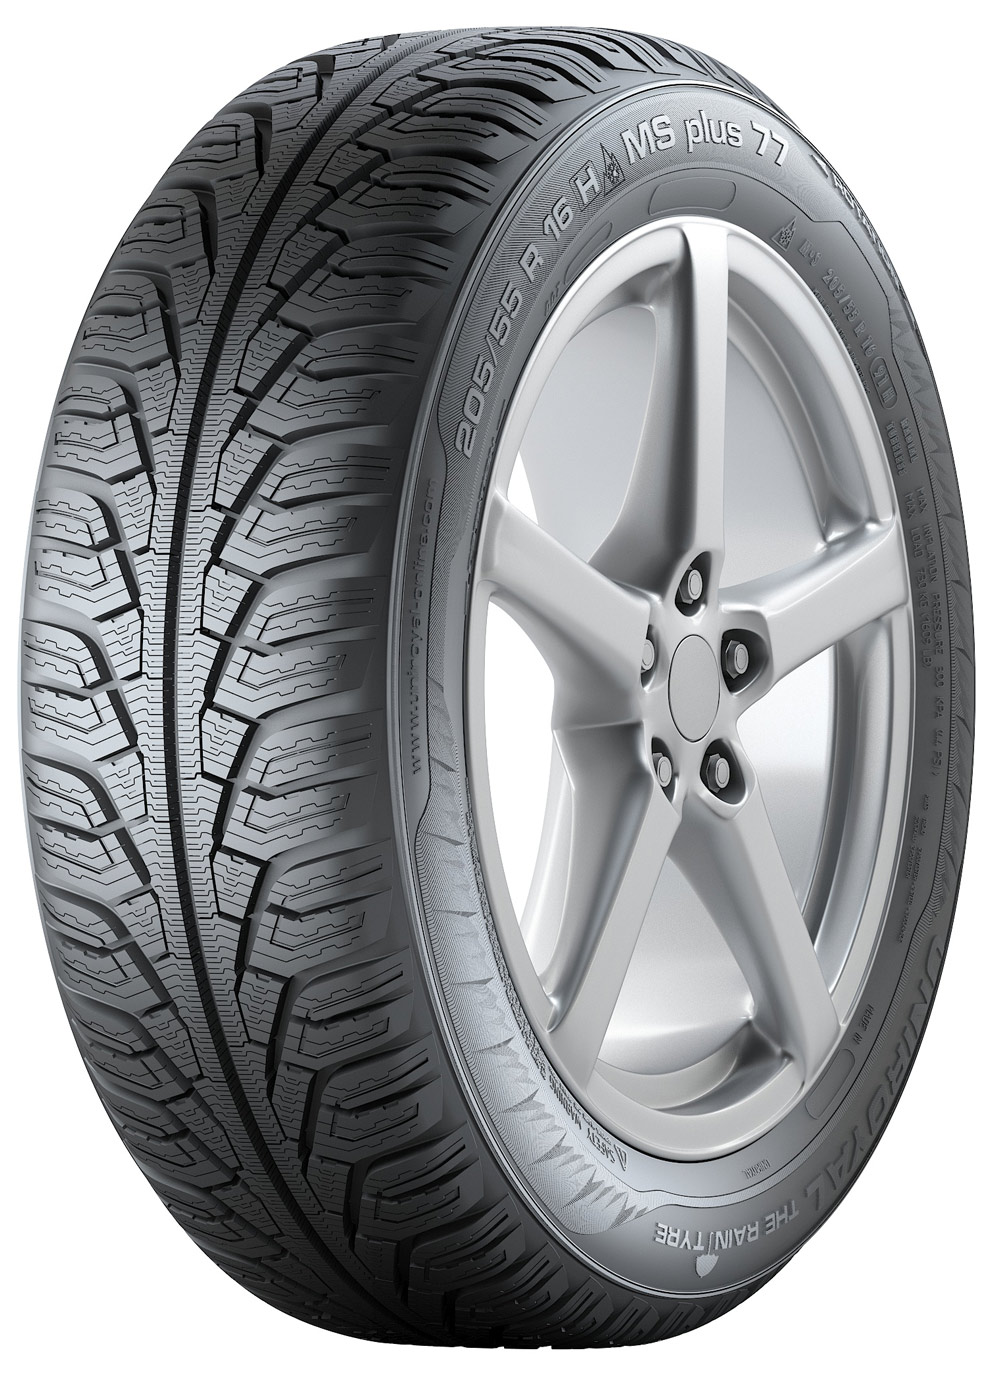 UNIROYAL MS PLUS 77 195/65 R 15